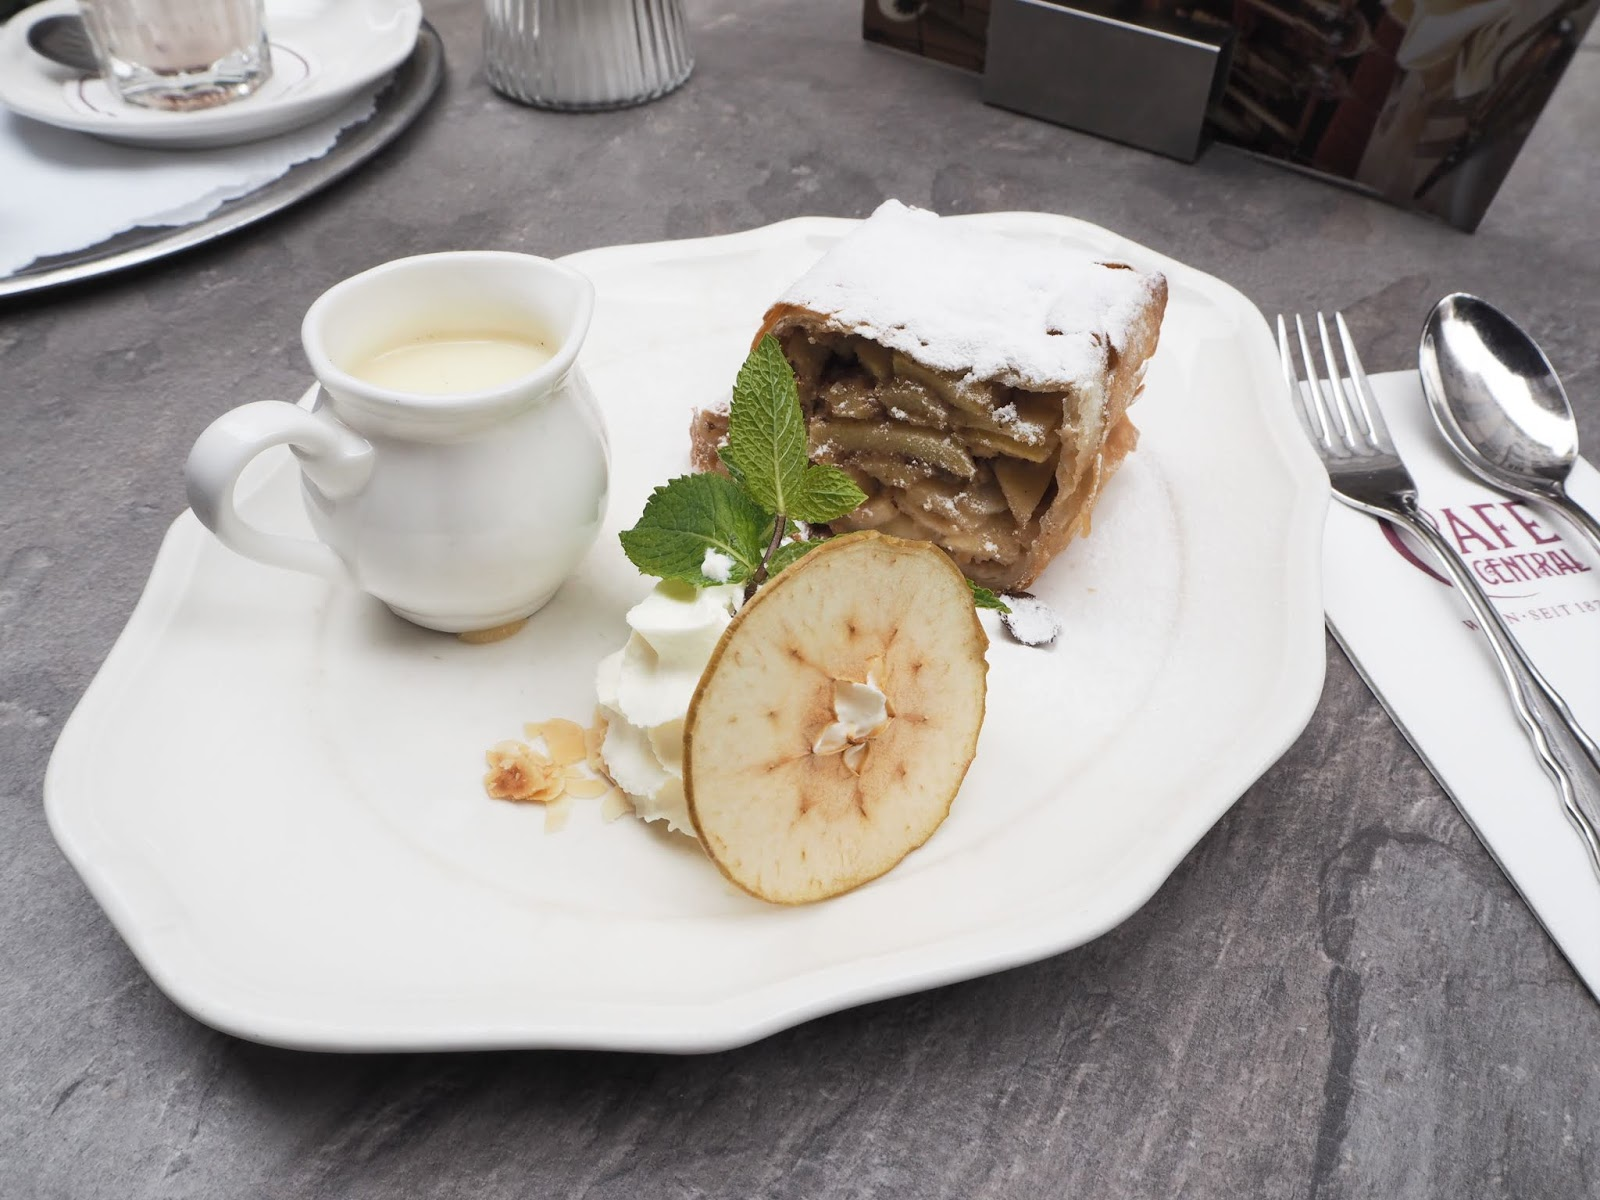 applestrudle served at cafe central vienna